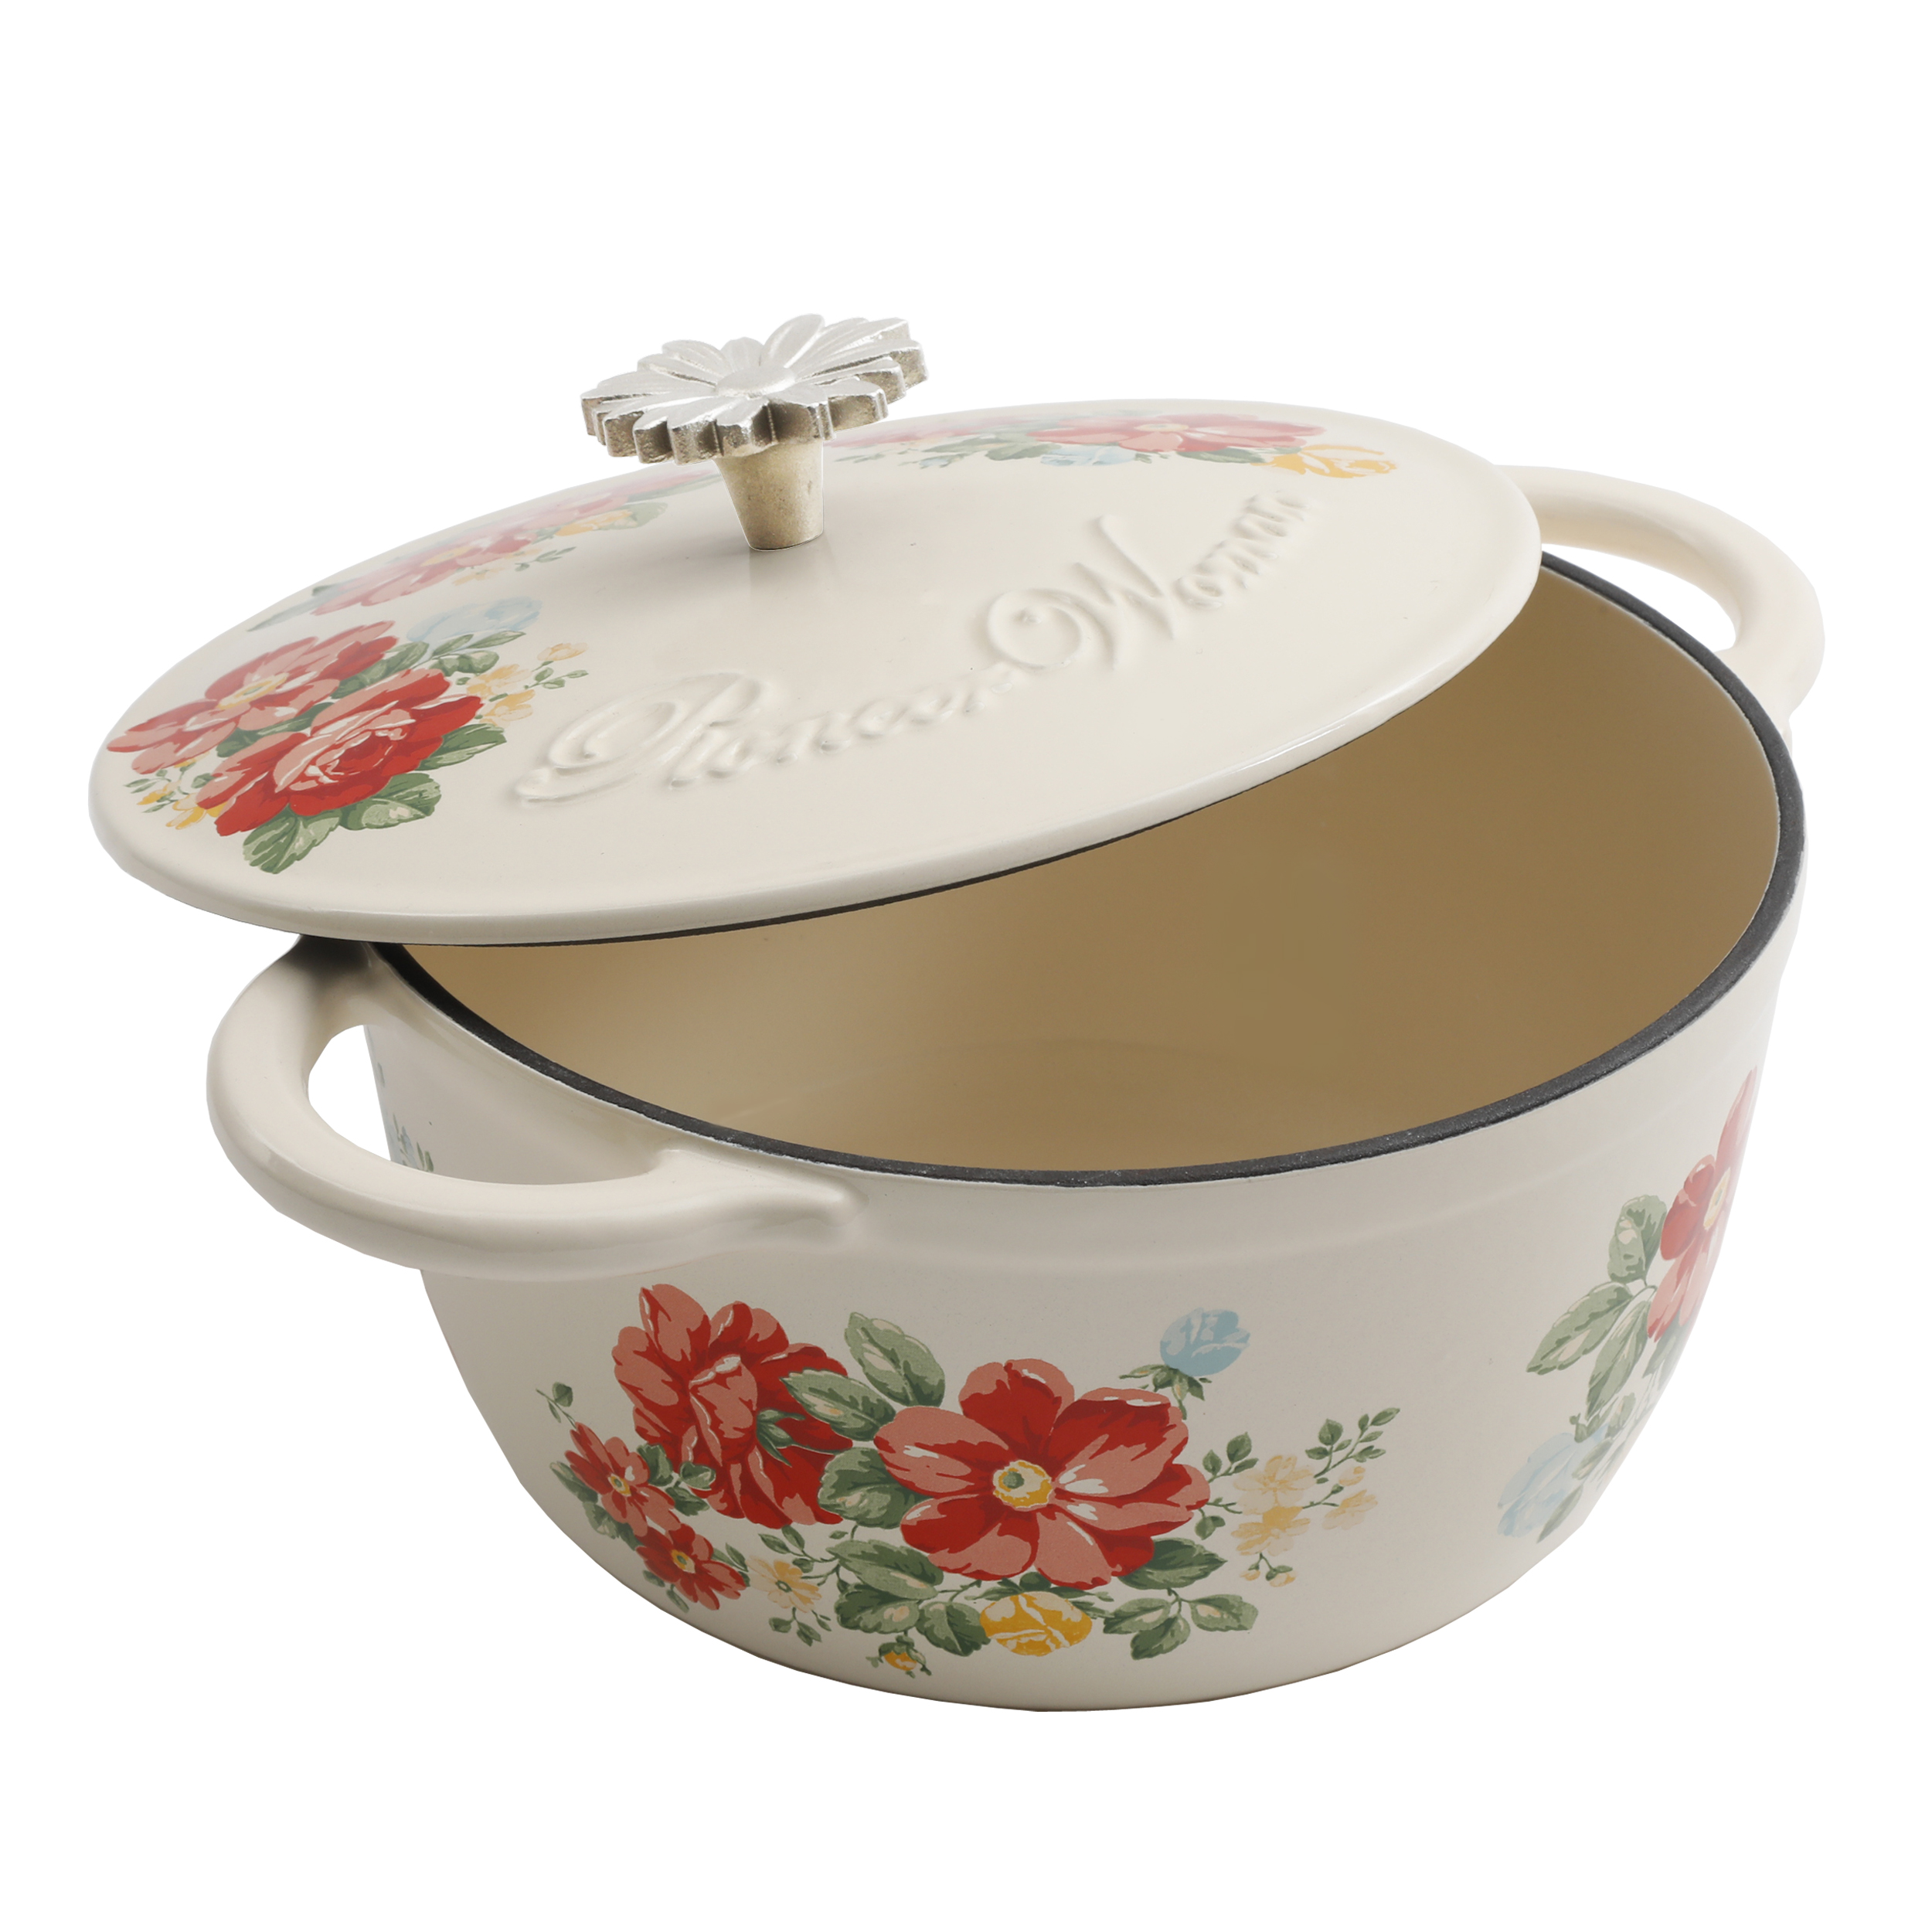 Cast Iron Casserole Dish The Pioneer Woman Timeless Beauty Vintage Enameled Cast Iron 3 Quart Floral Casserole Dish With Lid